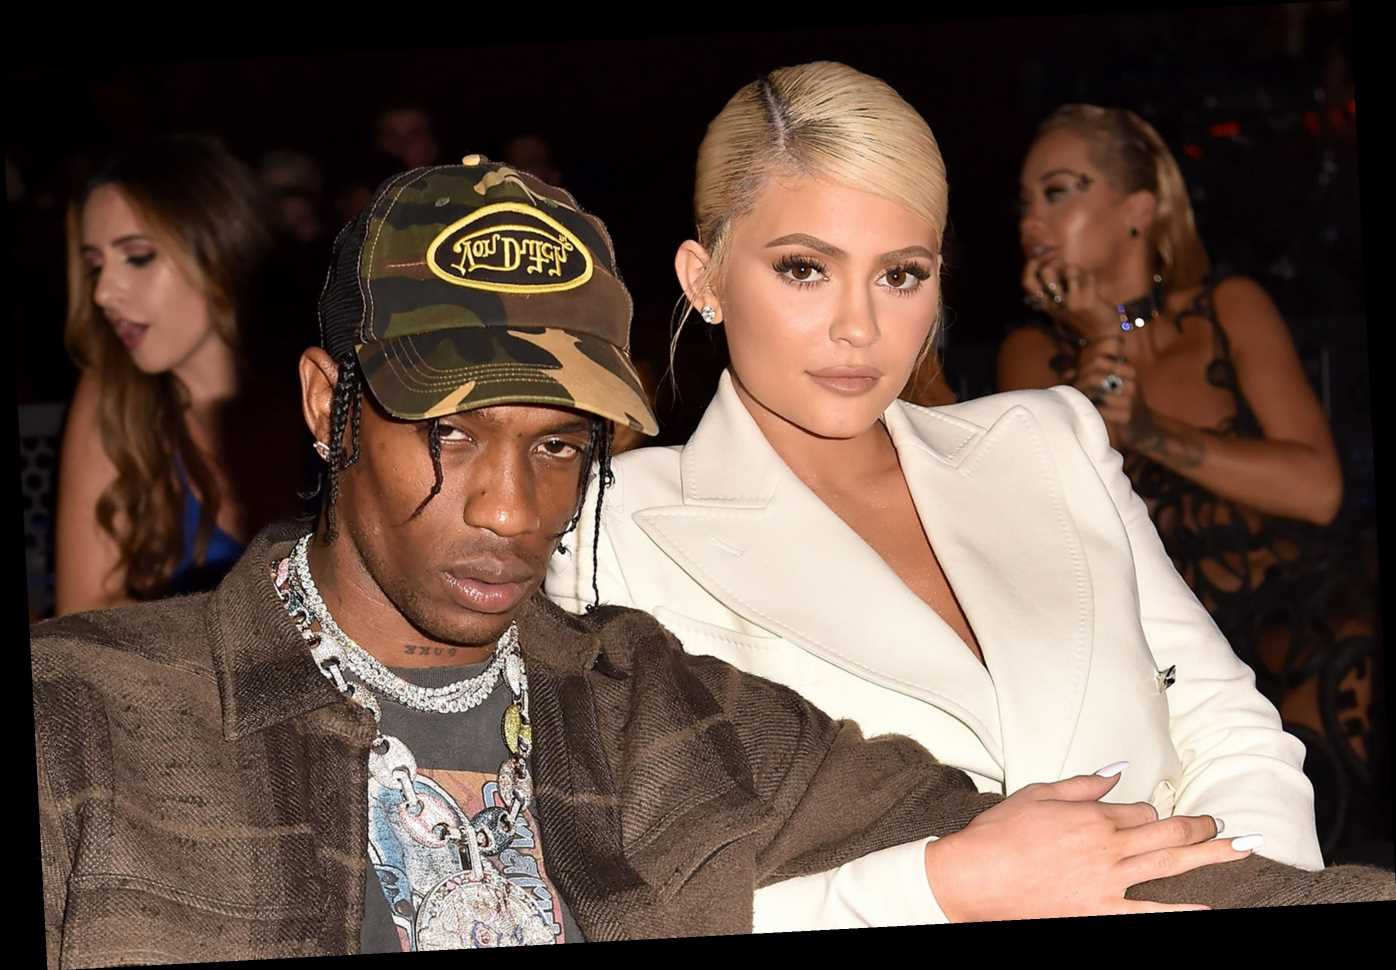 Kylie Jenner 'Wanted a Second Baby' but 'Had Trust Issues' Ahead of Travis Scott Split: Source